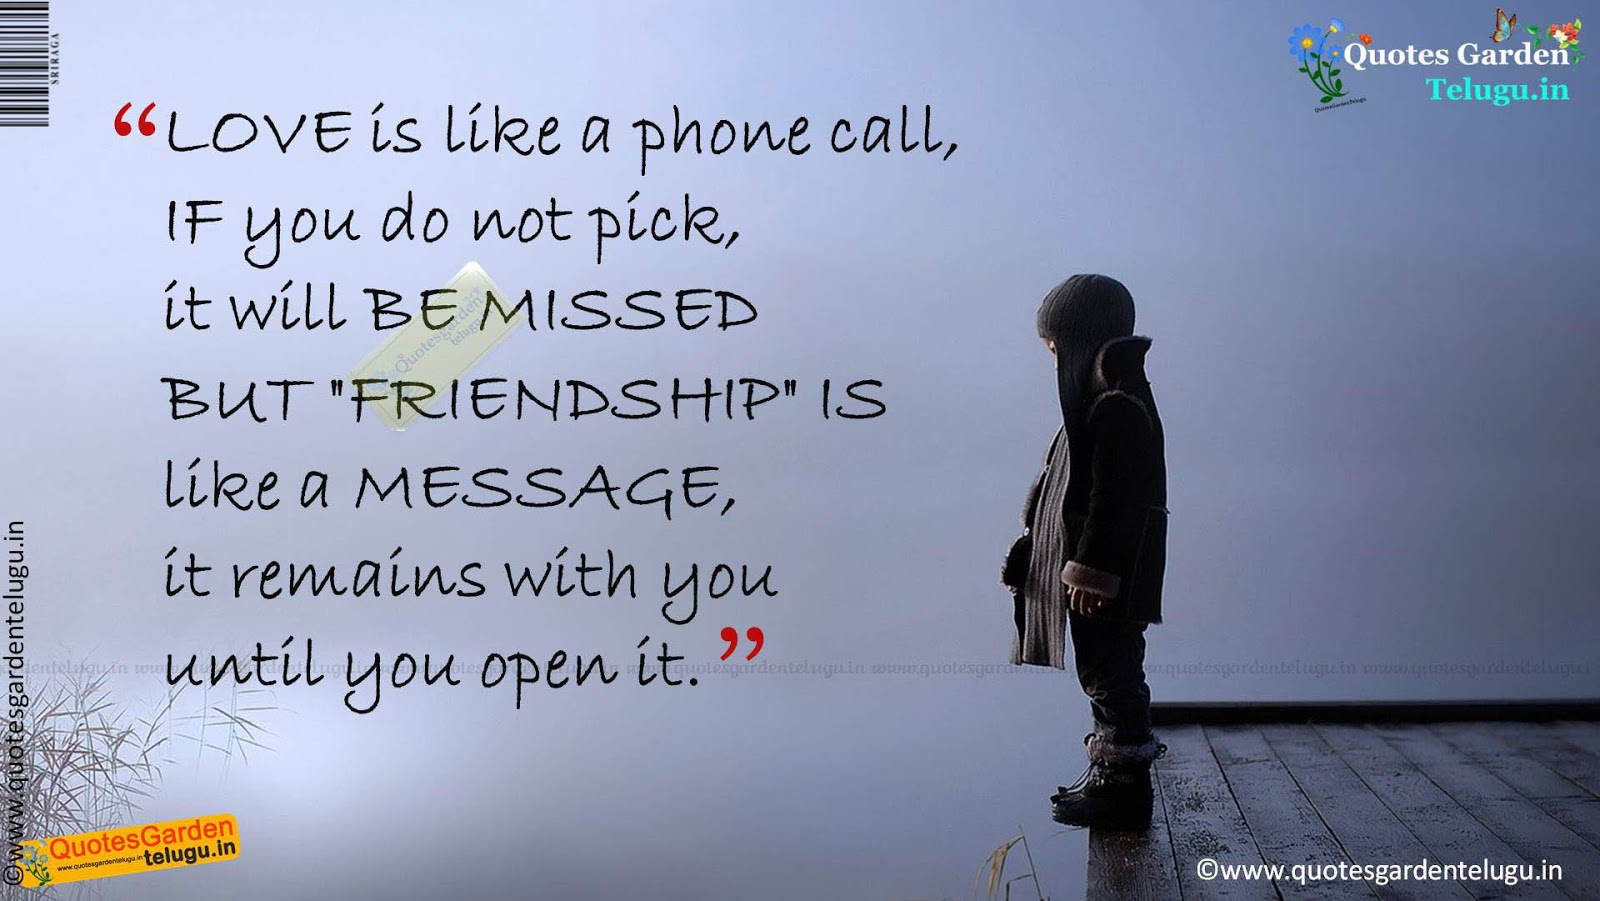 Heart Touching Love Quotes : love quotes latest love n friendship quotes nice friendship quotes ...